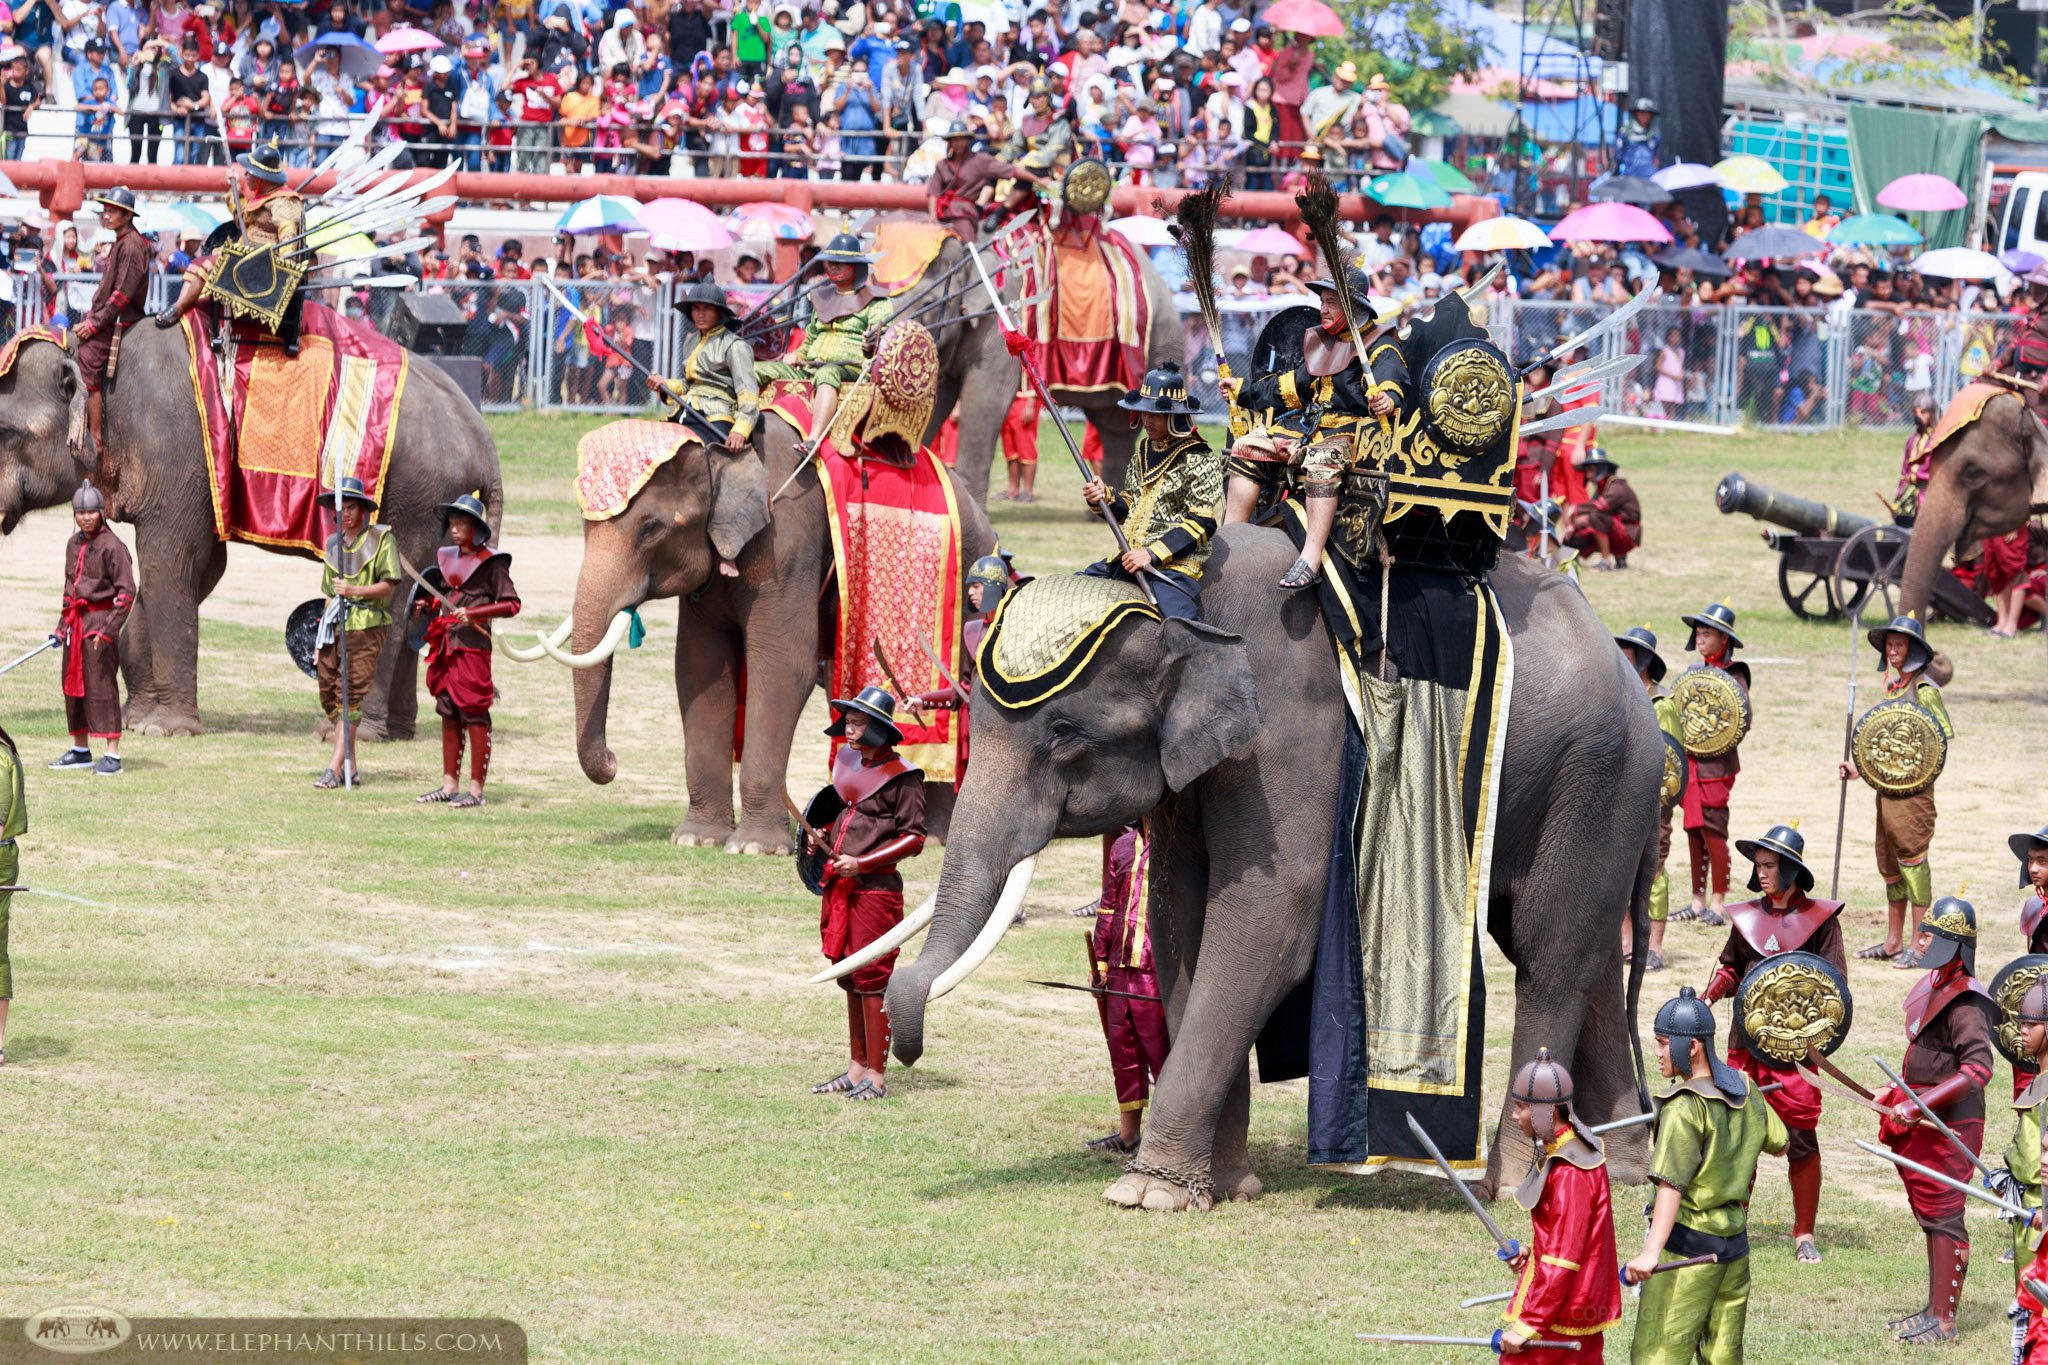 In Thai Tradition Elephants feature in performances this one